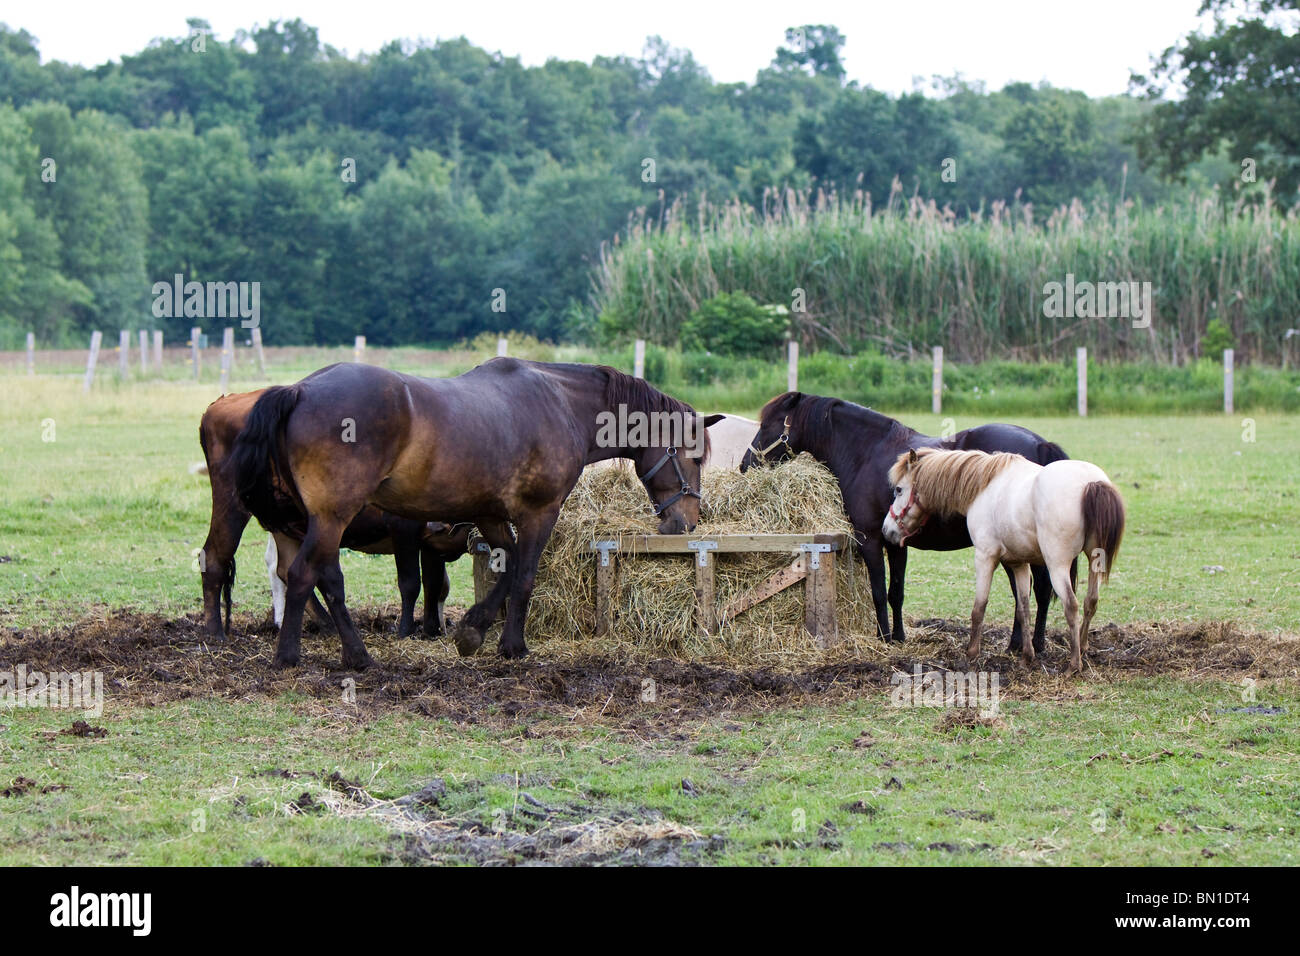 Three horses are eating grass from the manger at the farm. - Stock Image